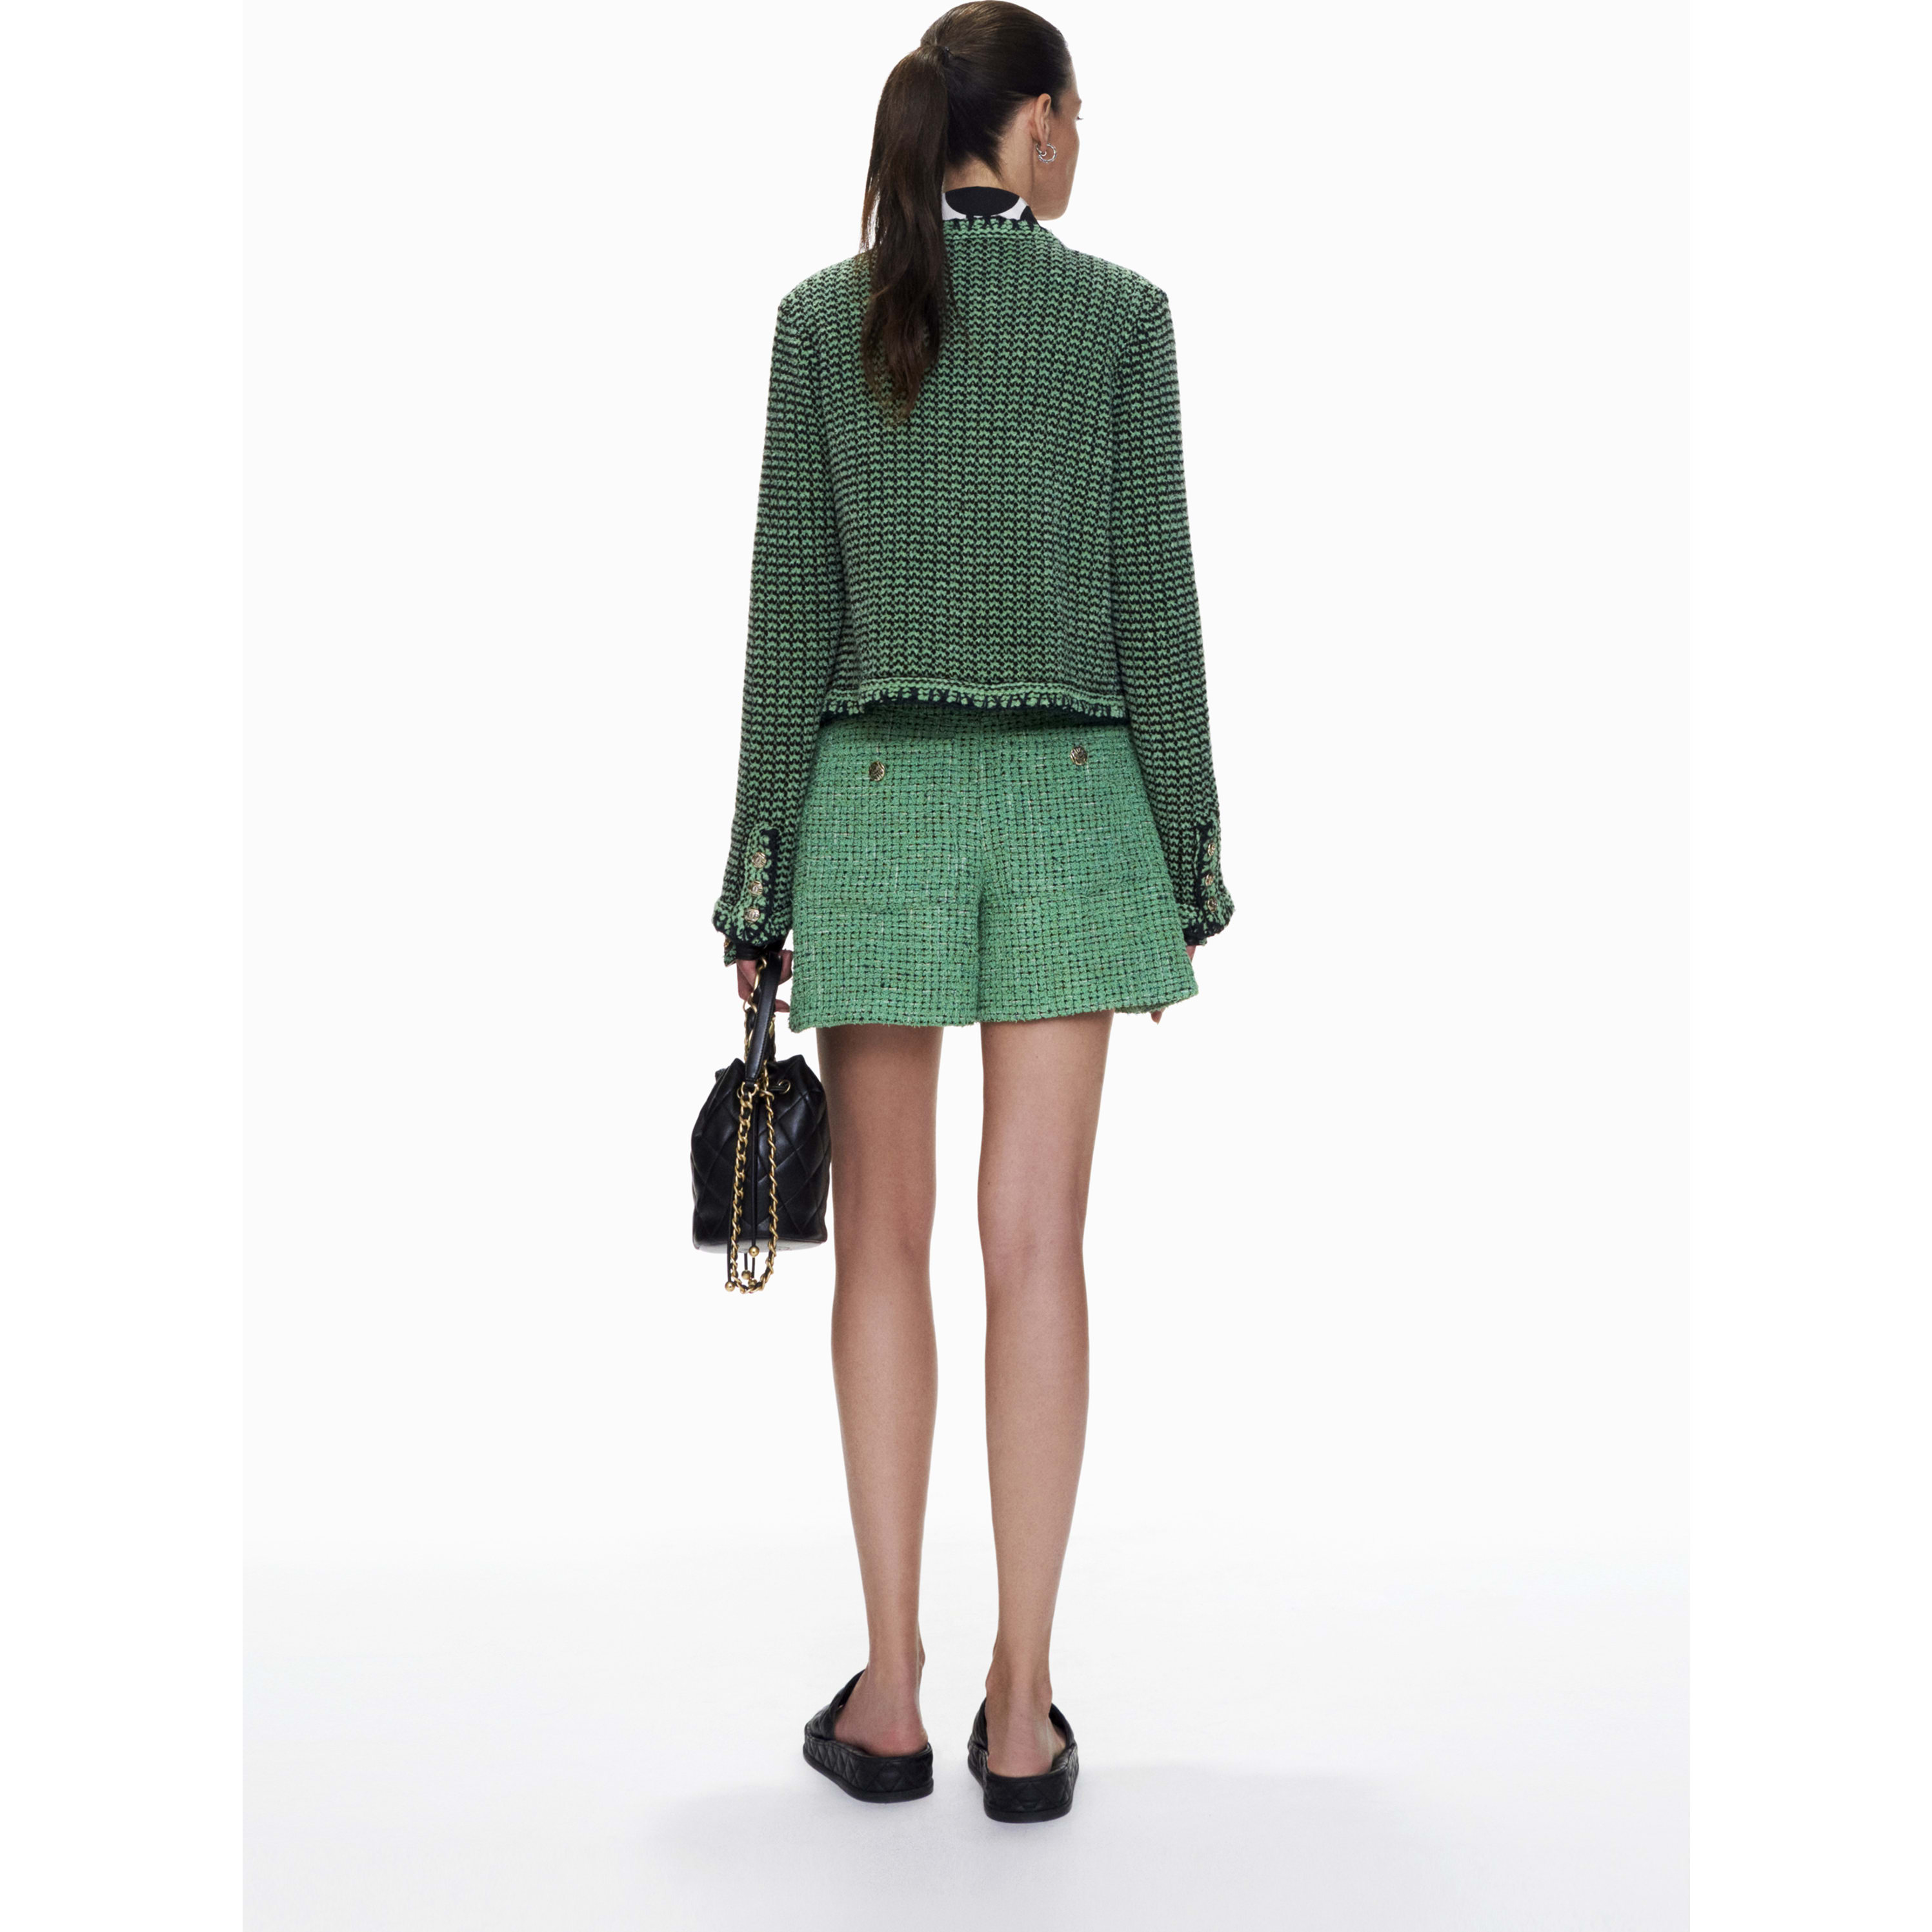 Cardigan - Green & Black - Cashmere & Cotton - CHANEL - Alternative view - see standard sized version